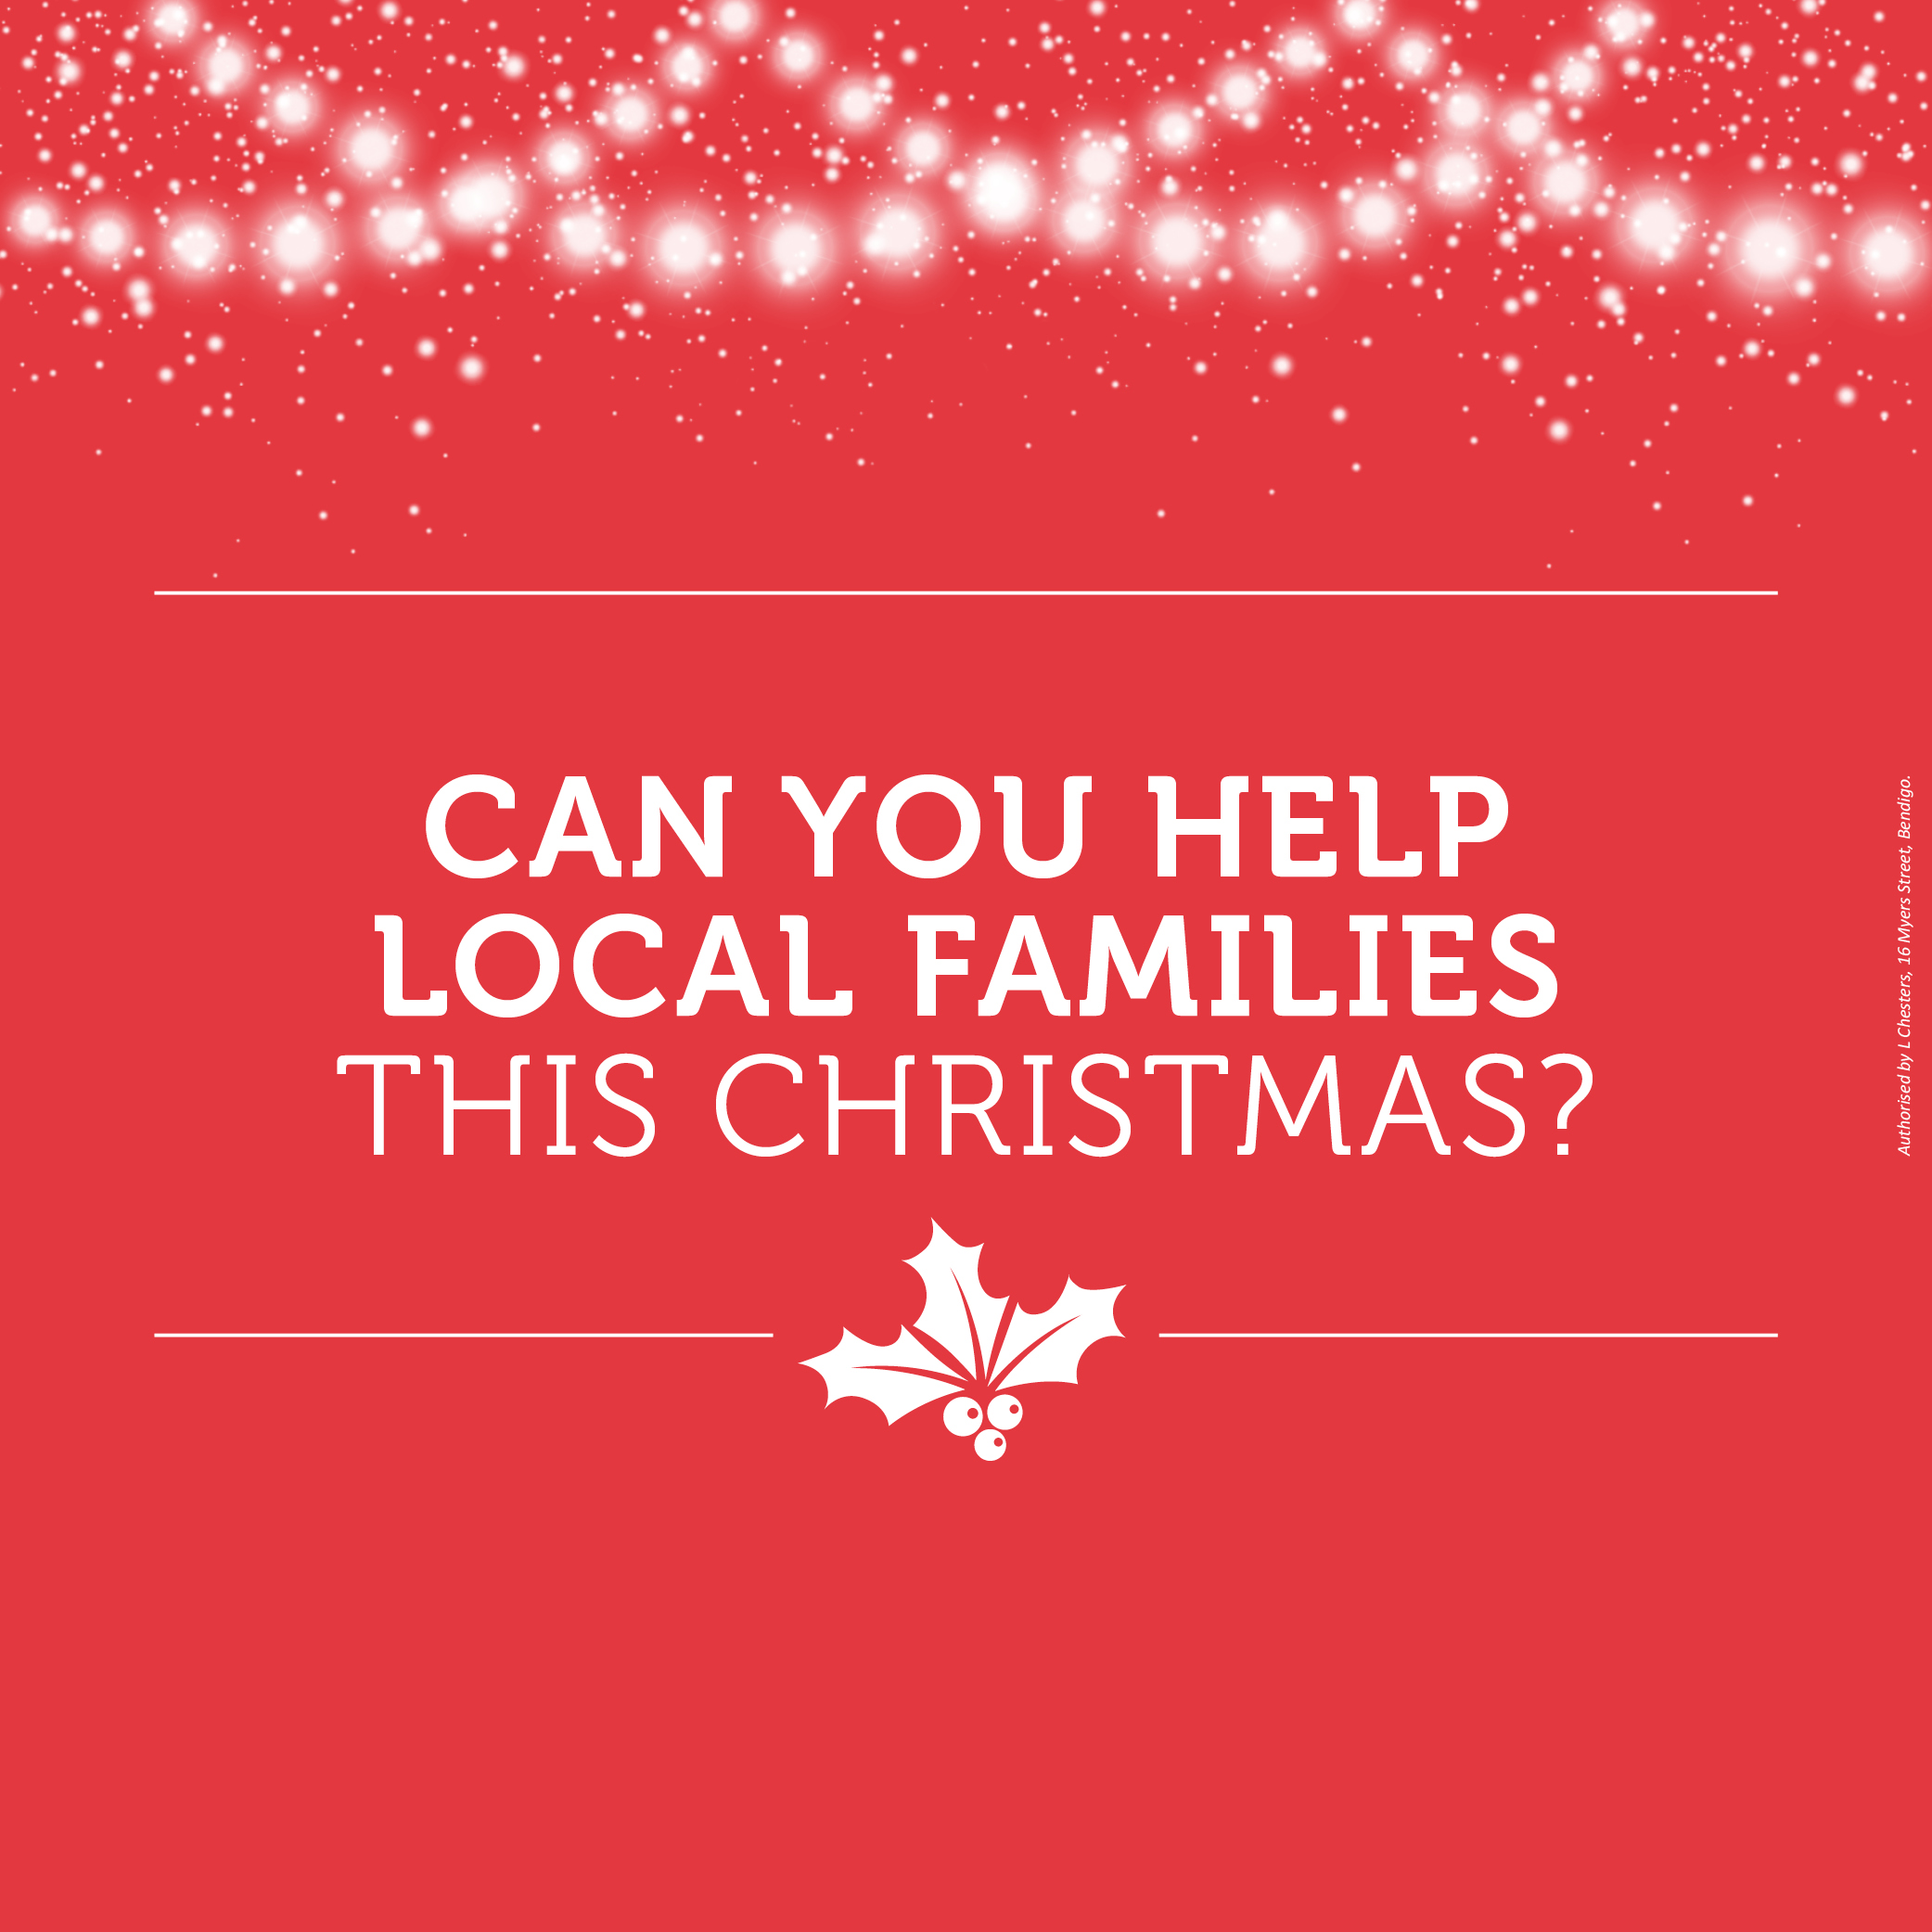 Chesters calls on the community to help local families this Christmas